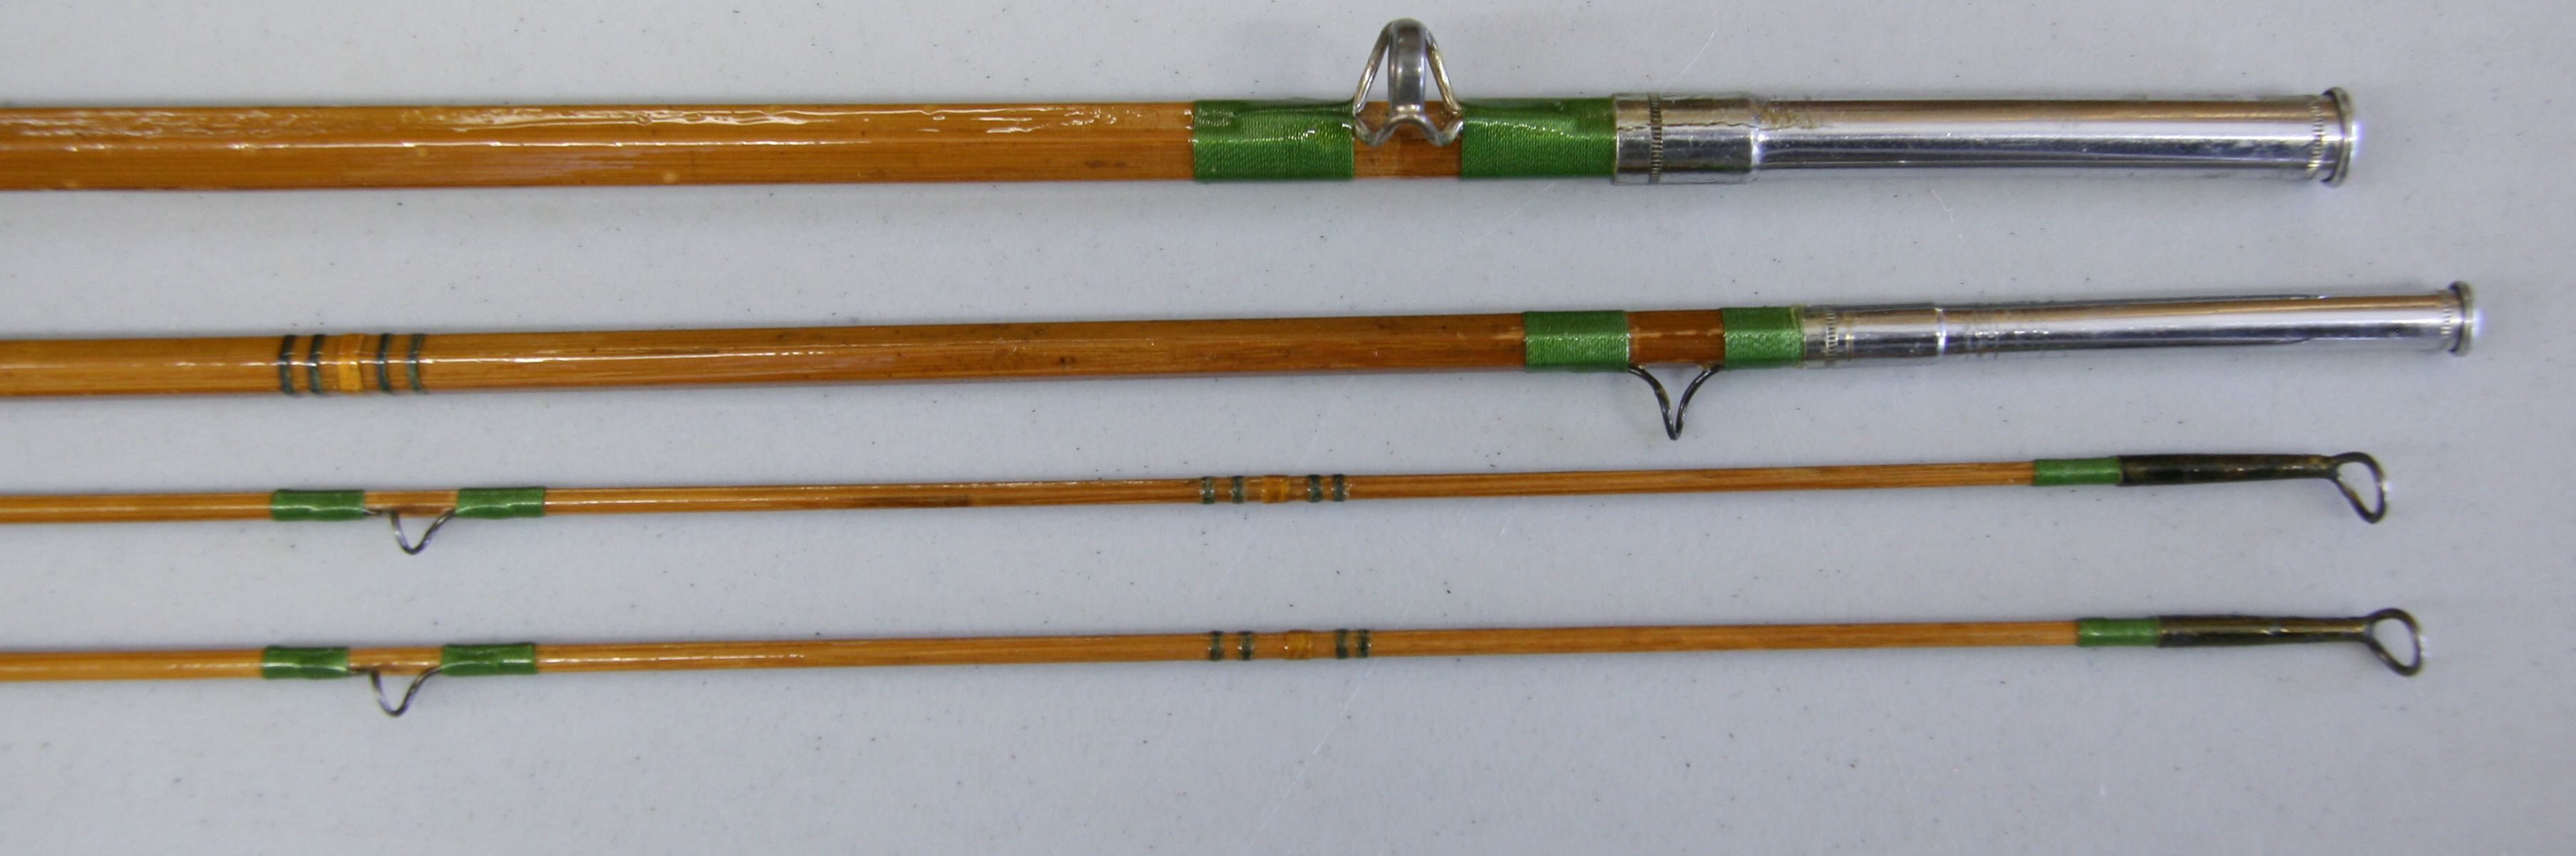 Bamboo fly rod blanks pictures to pin on pinterest pinsdaddy for Vintage fishing rod identification